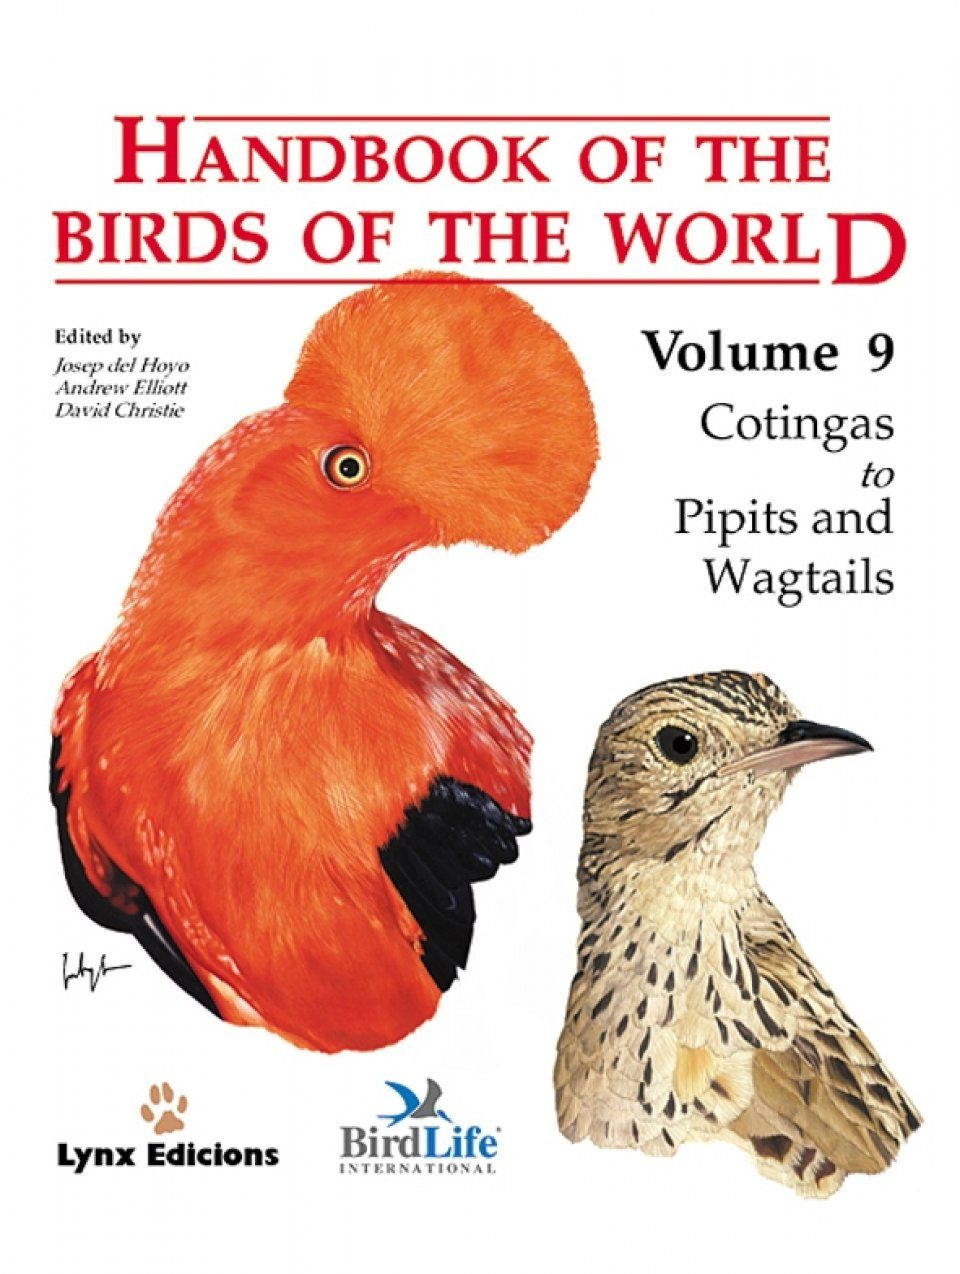 Handbook of the Birds of the World, Volume 9: Cotingas to Pipits and Wagtails